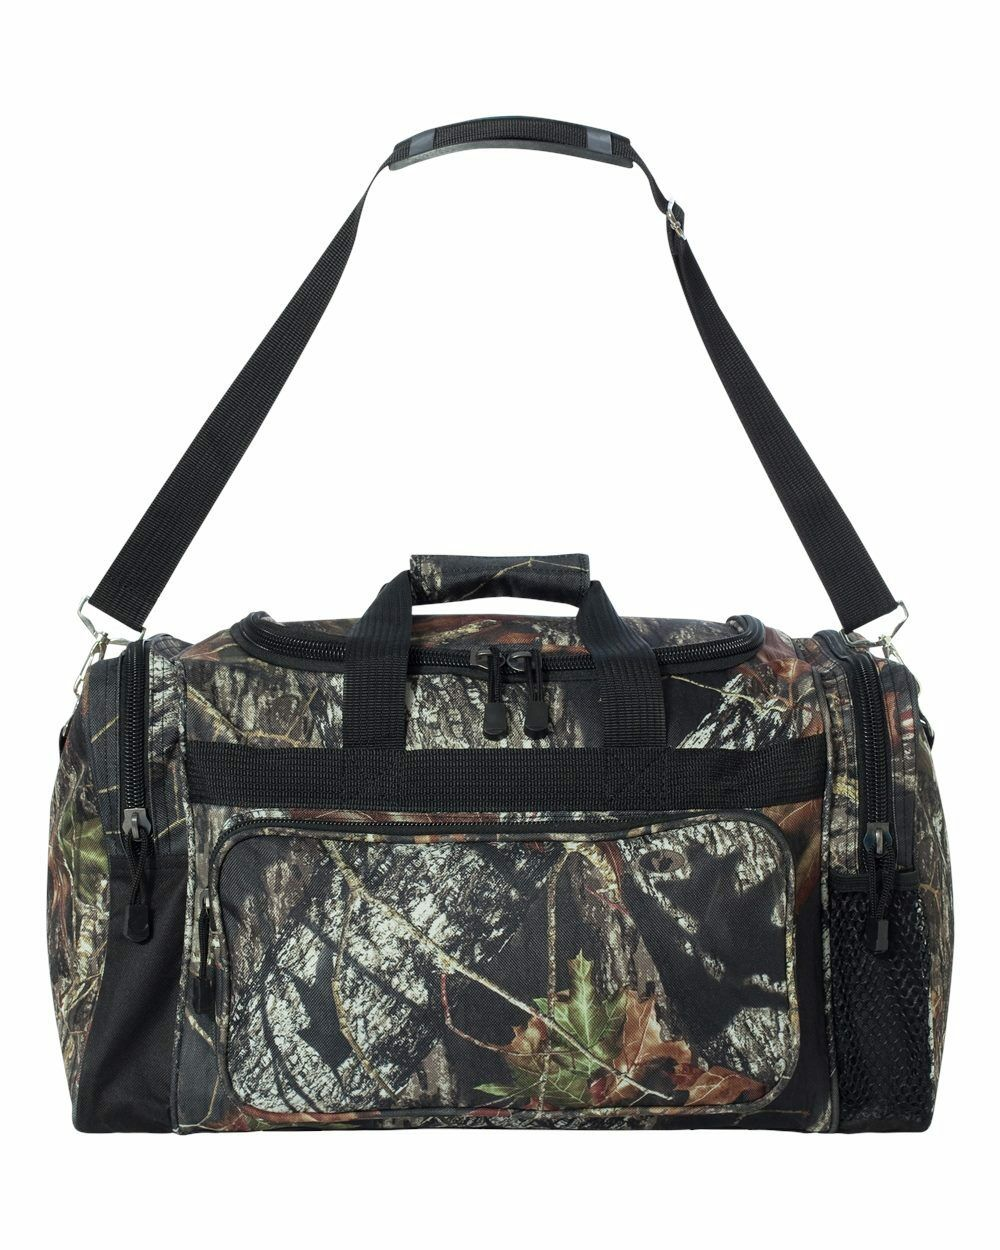 025368ef0f Details about LICENSED CAMO HUNTING DUFFLE BAG - MOSSY OAK